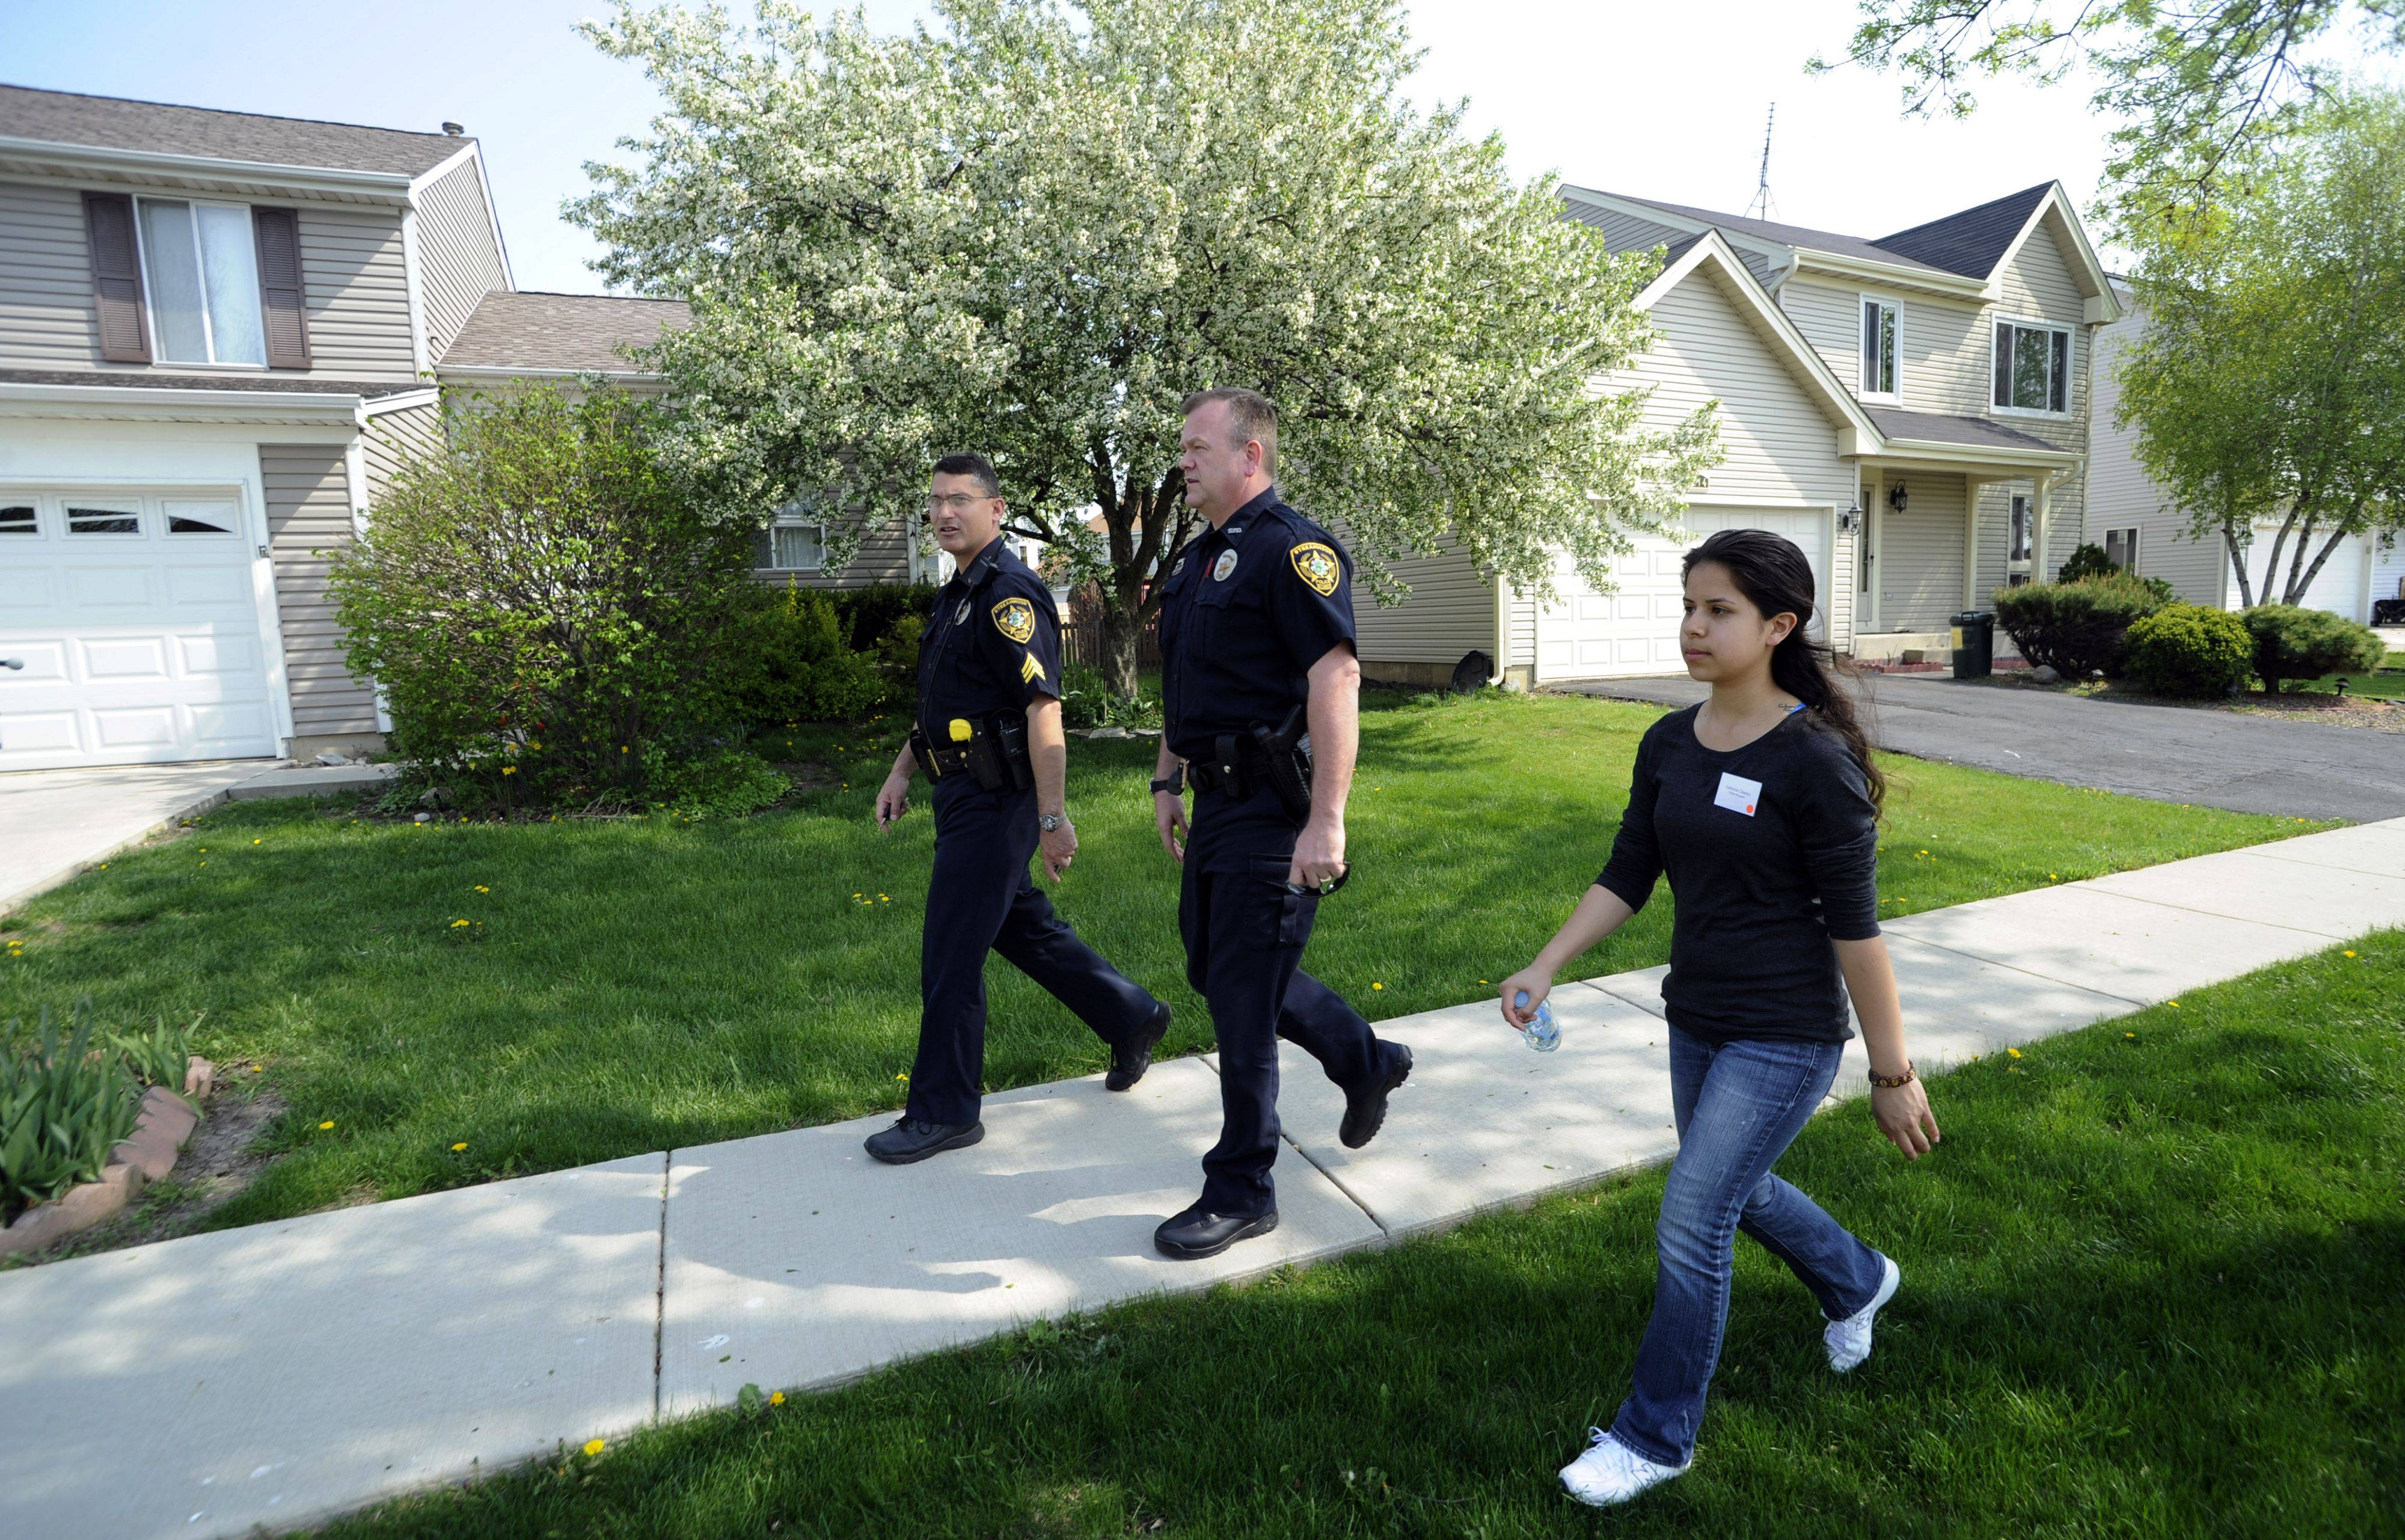 Streamwood High School senior Gabriela Chairez, 17, accompanies Streamwood patrol Sgt. Ed Valente and Officer Steve Millar as they walk the beat during the school's 30th annual Student Government Day.